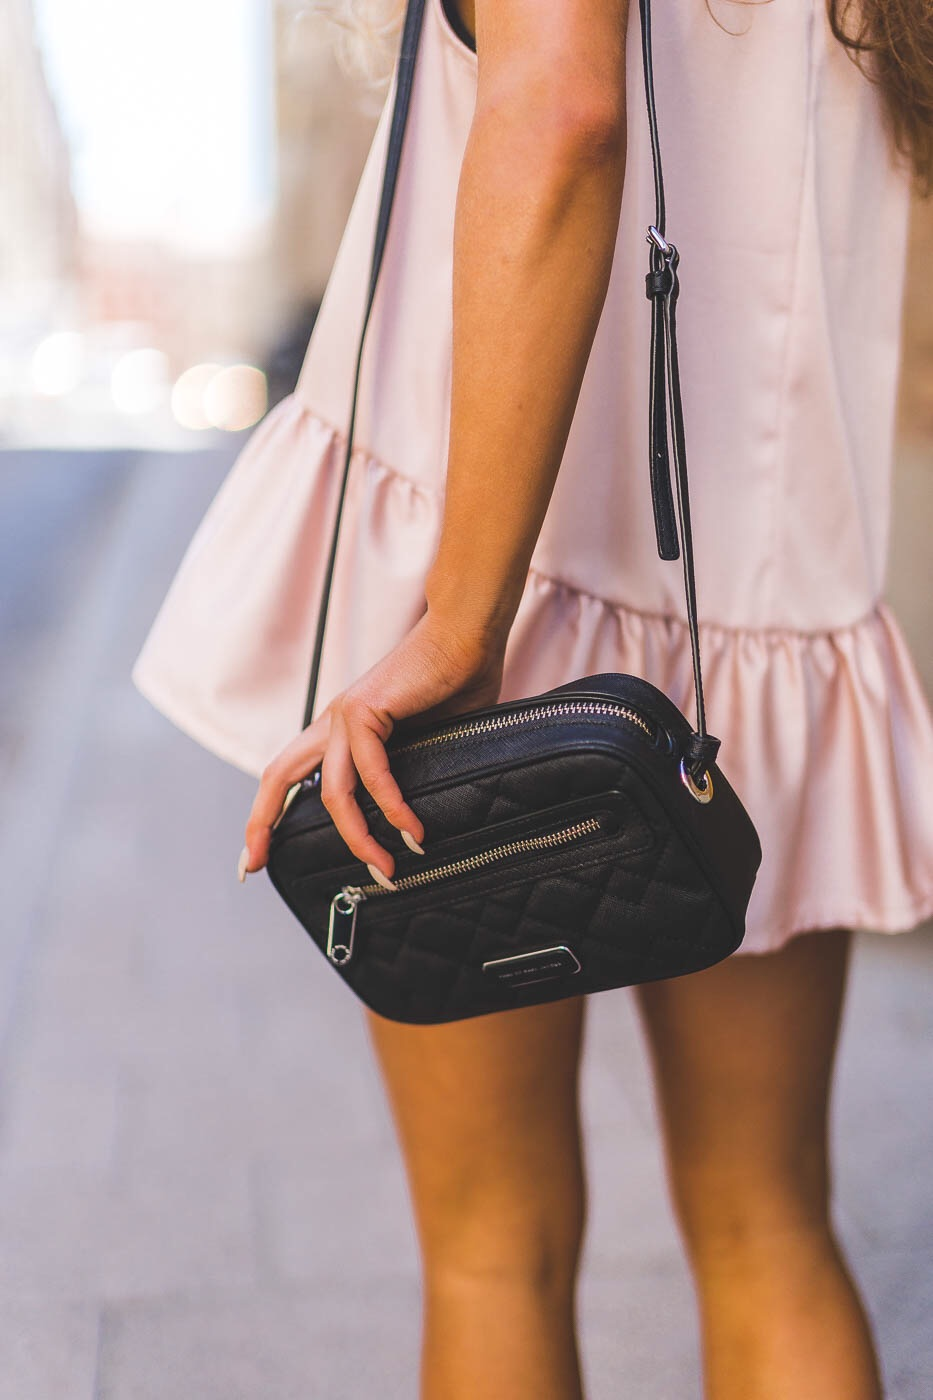 This outfit detail illustrates the blush pink trend well. Via Molly Rustas